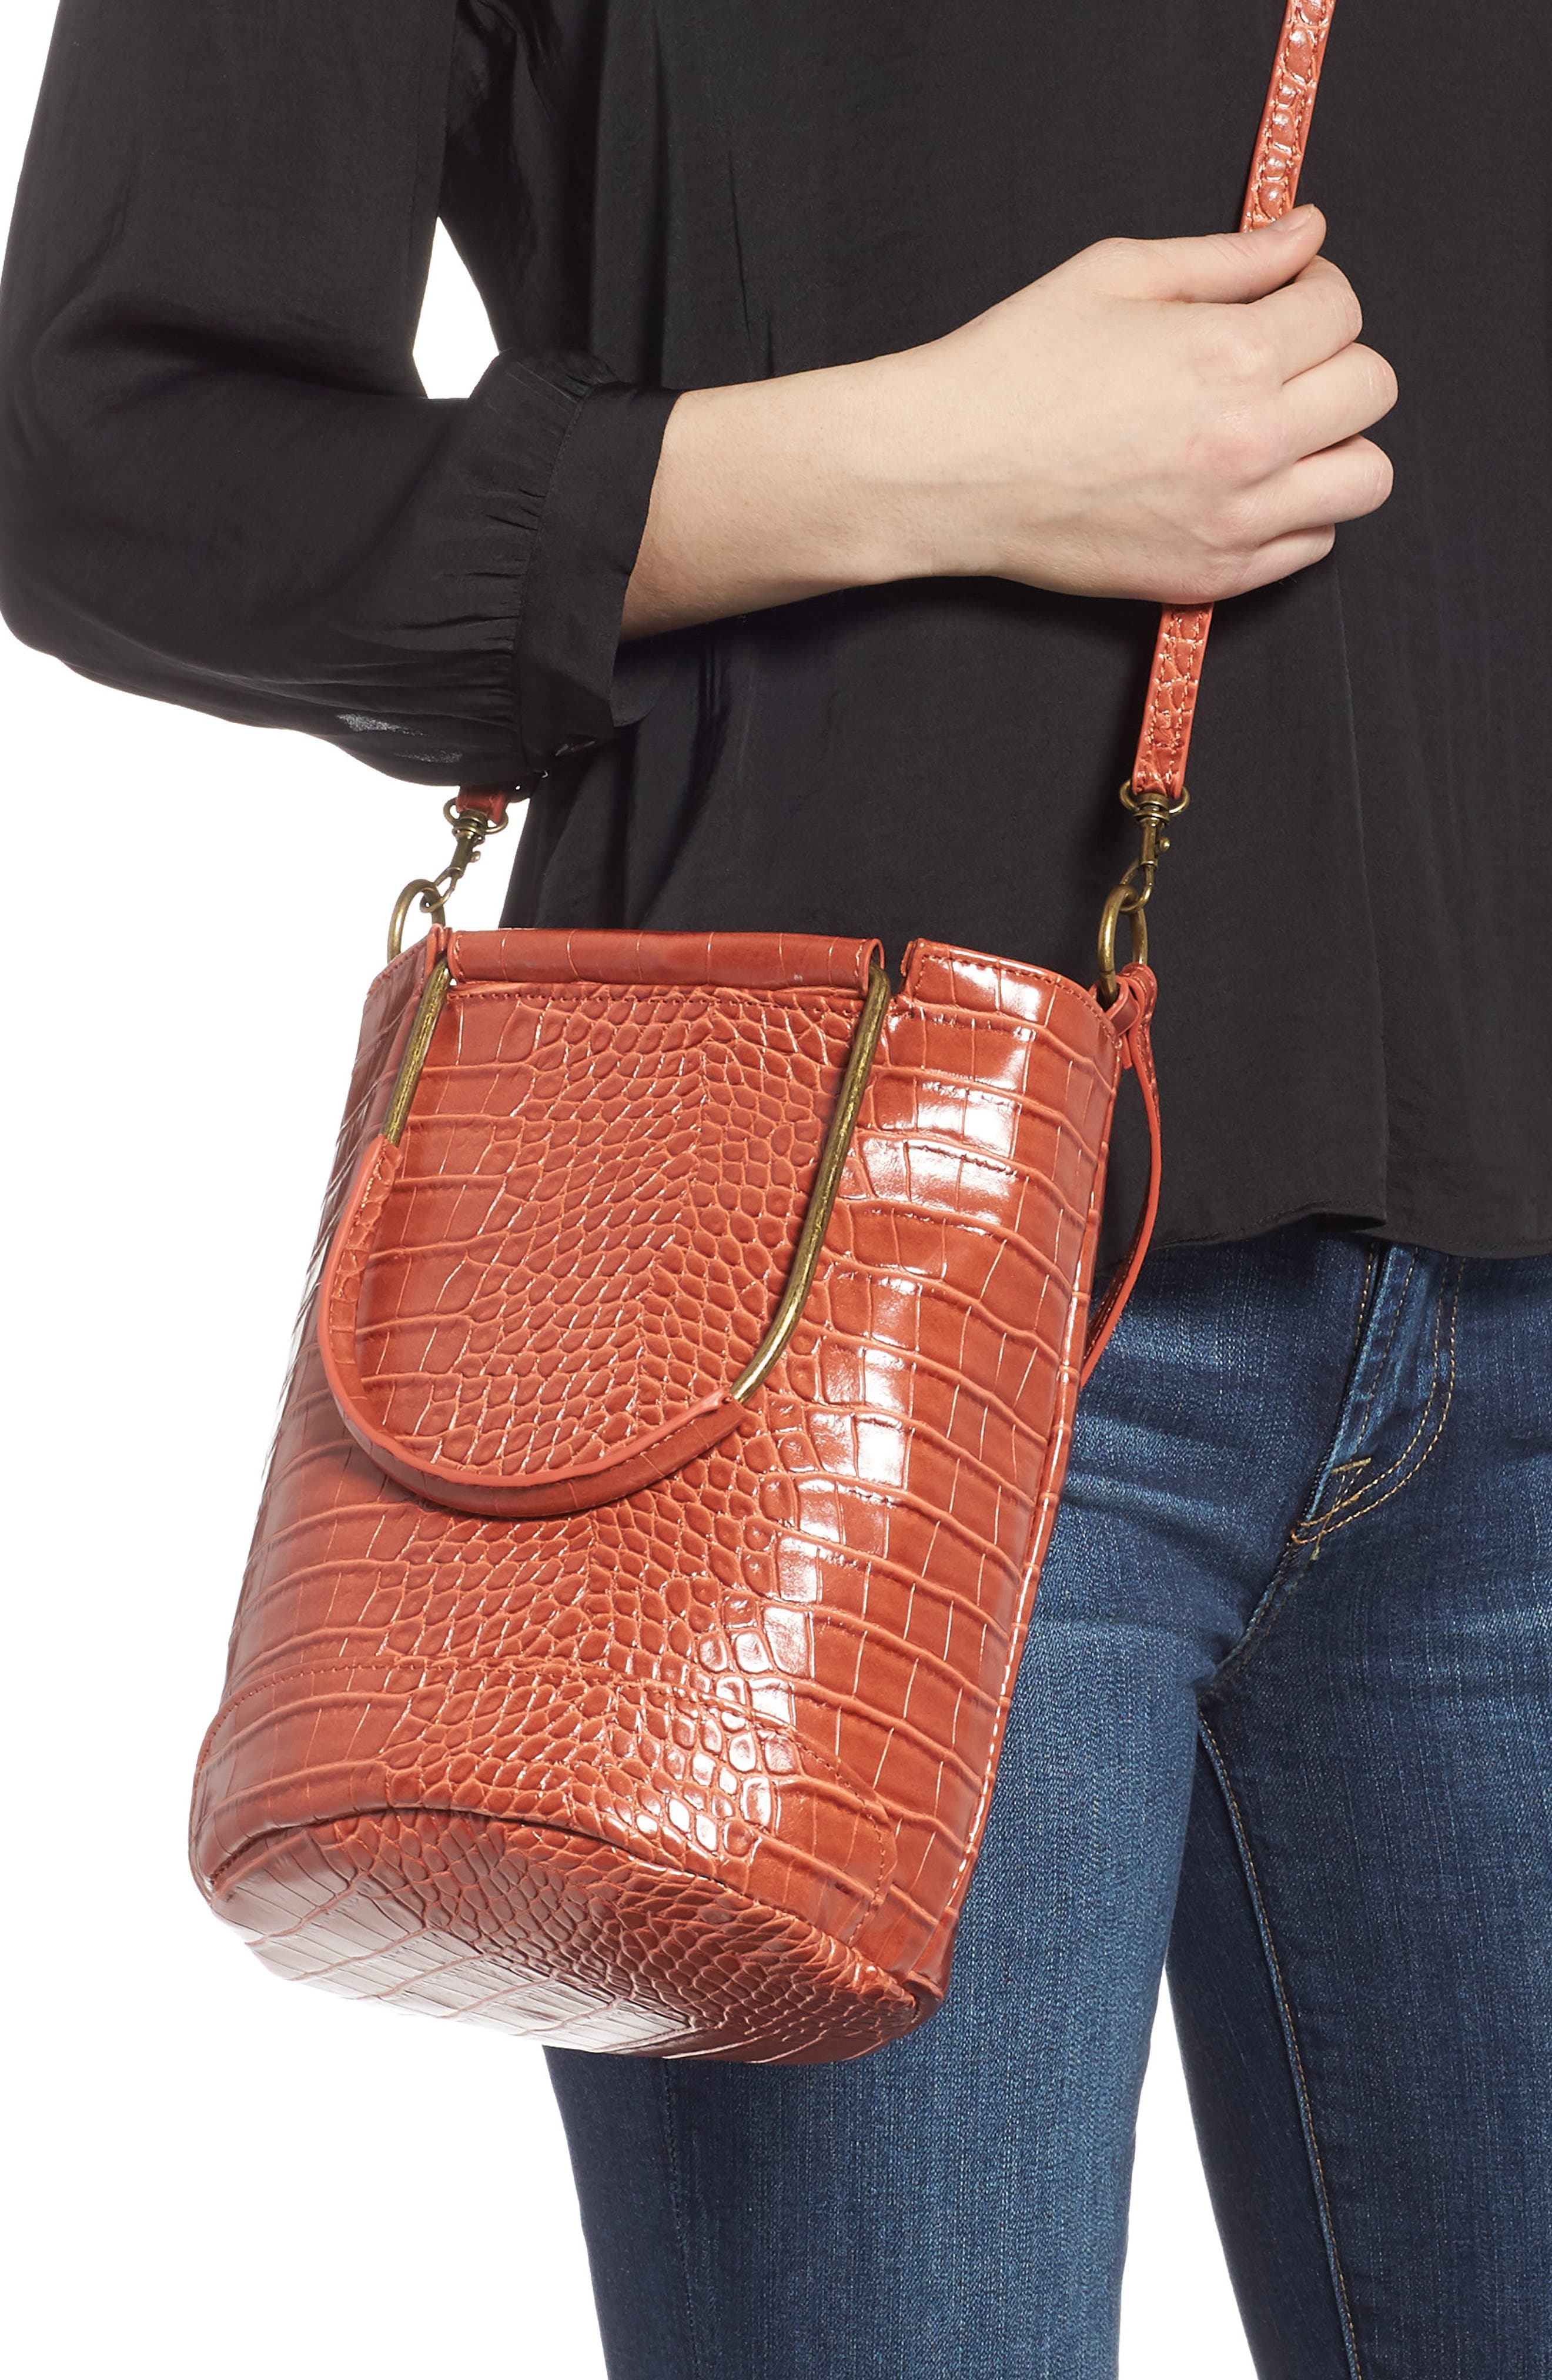 T-SHIRT & JEANS, Croc Embossed Faux Leather Tote, Alternate thumbnail 5, color, 810